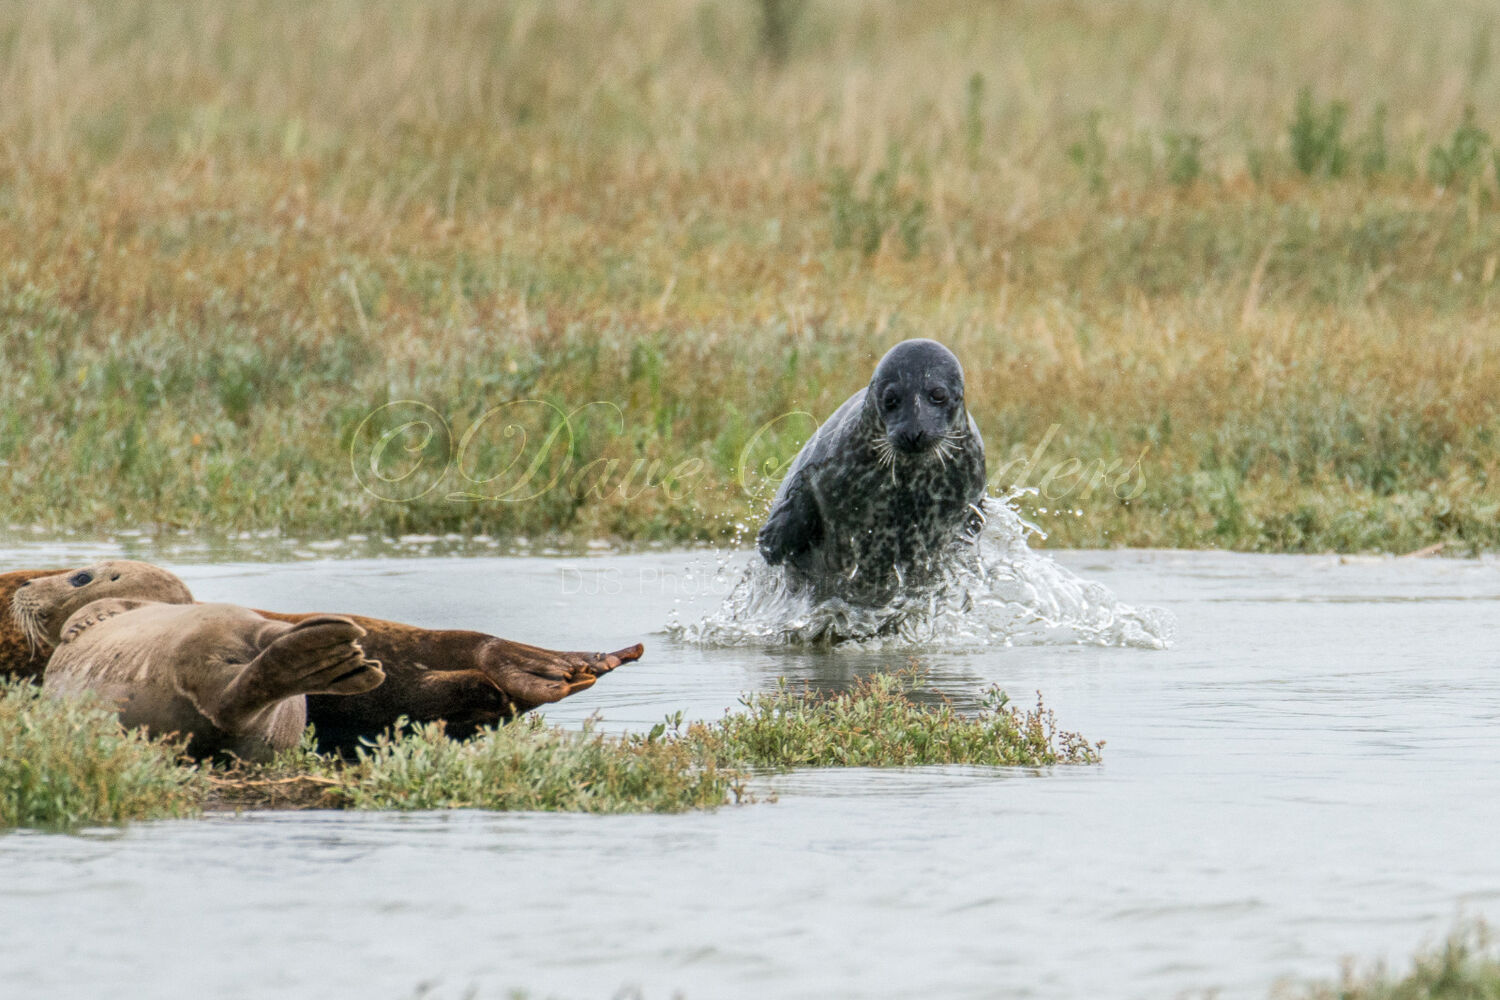 'Take off' Common Seal